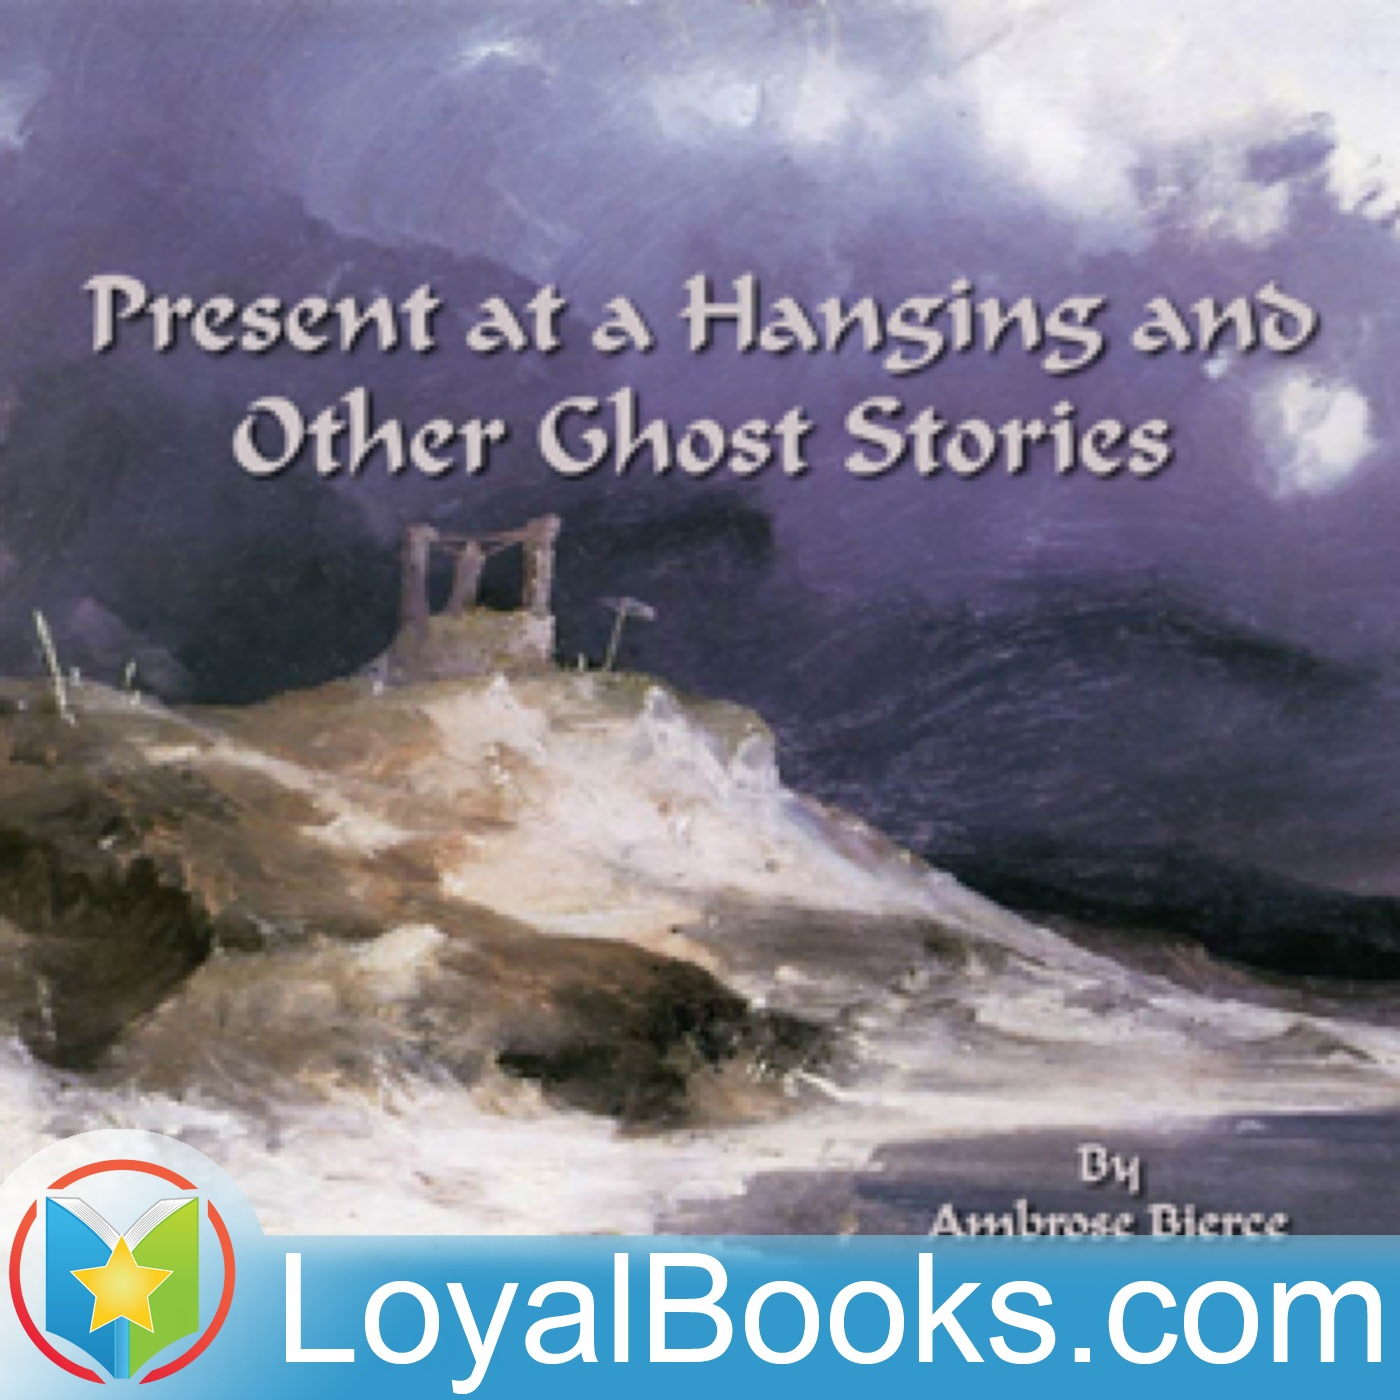 <![CDATA[Present at a Hanging and Other Ghost Stories by Ambrose Bierce]]>